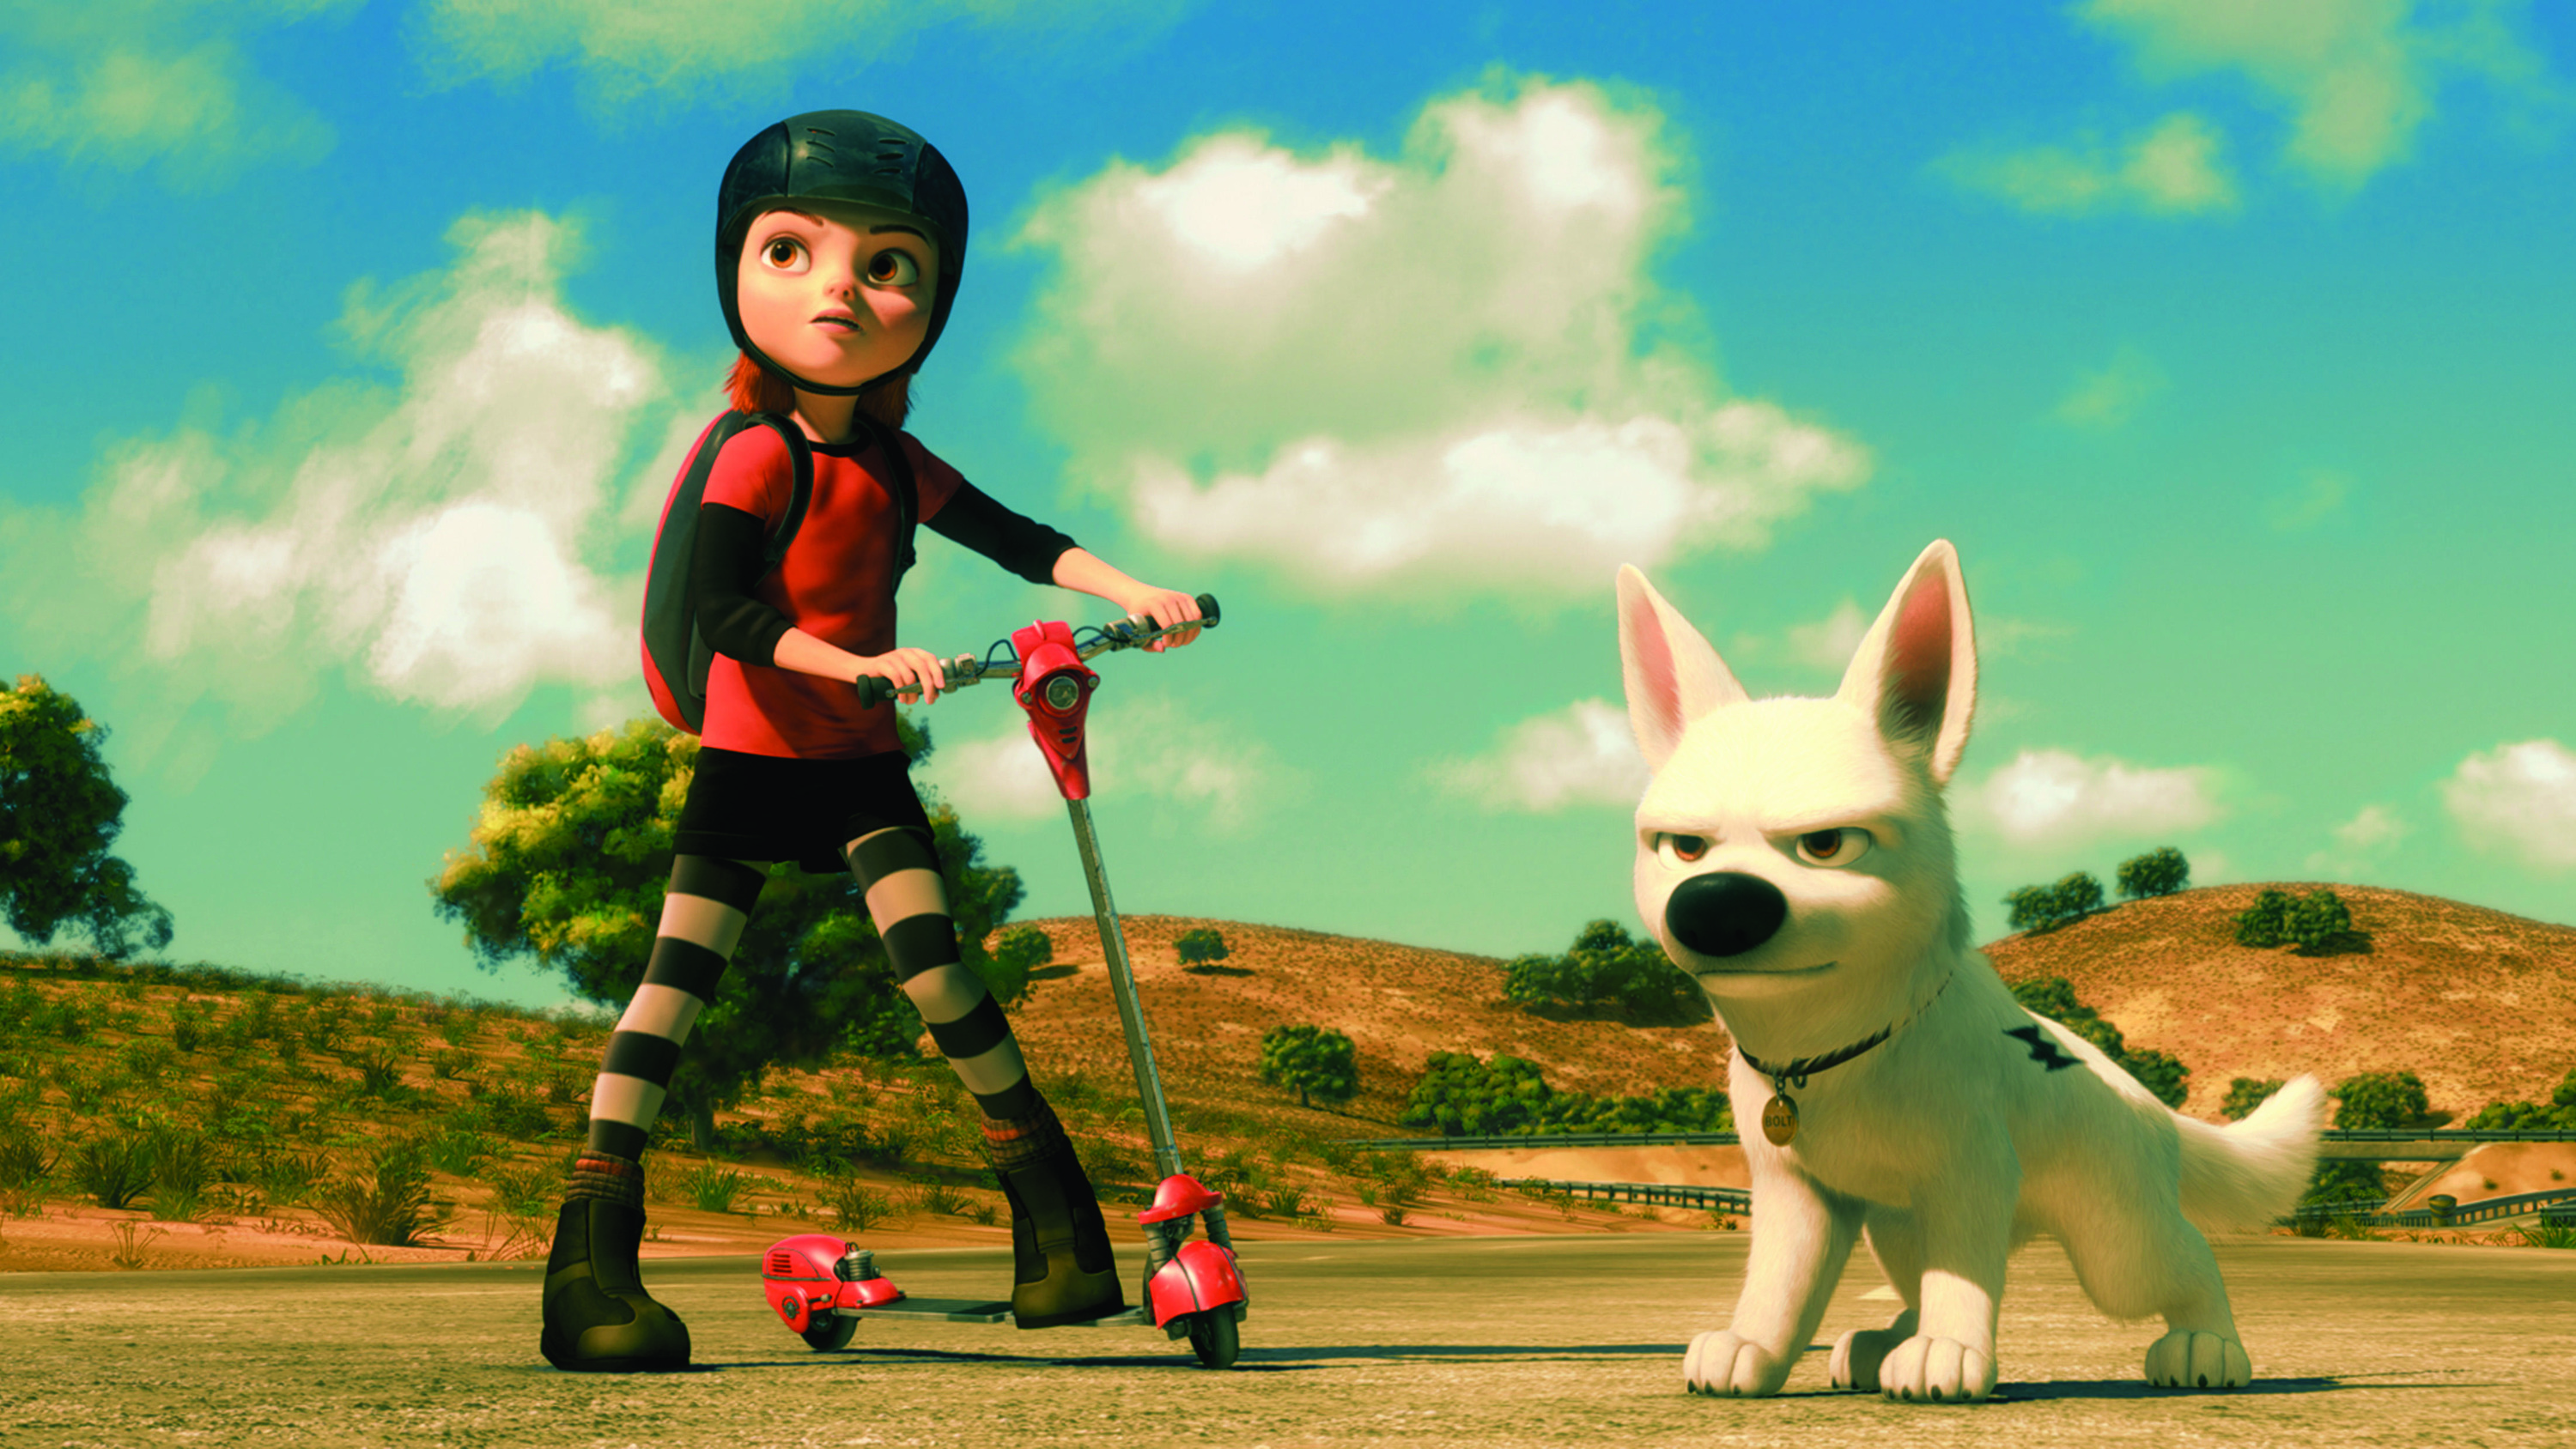 best animal movies and pet movies for kids and families